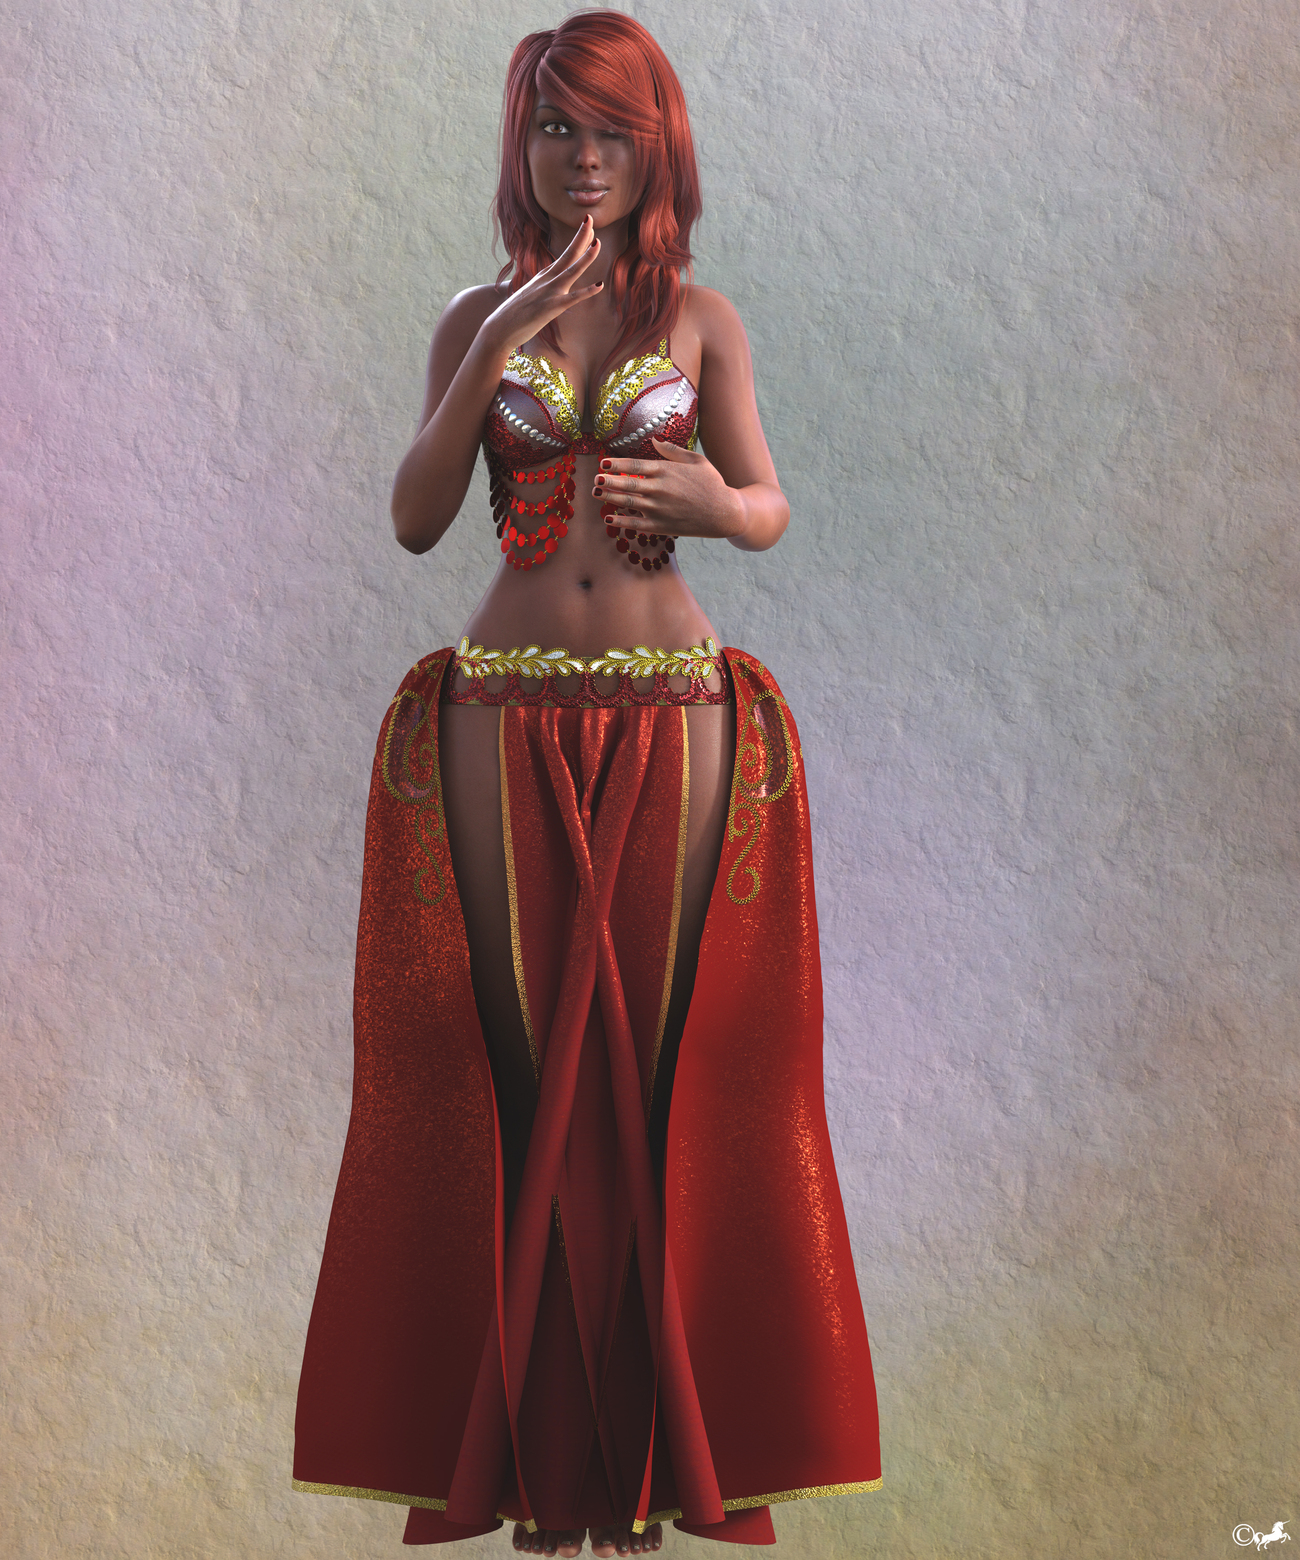 DAZ 935a or The belly dancer by miwi